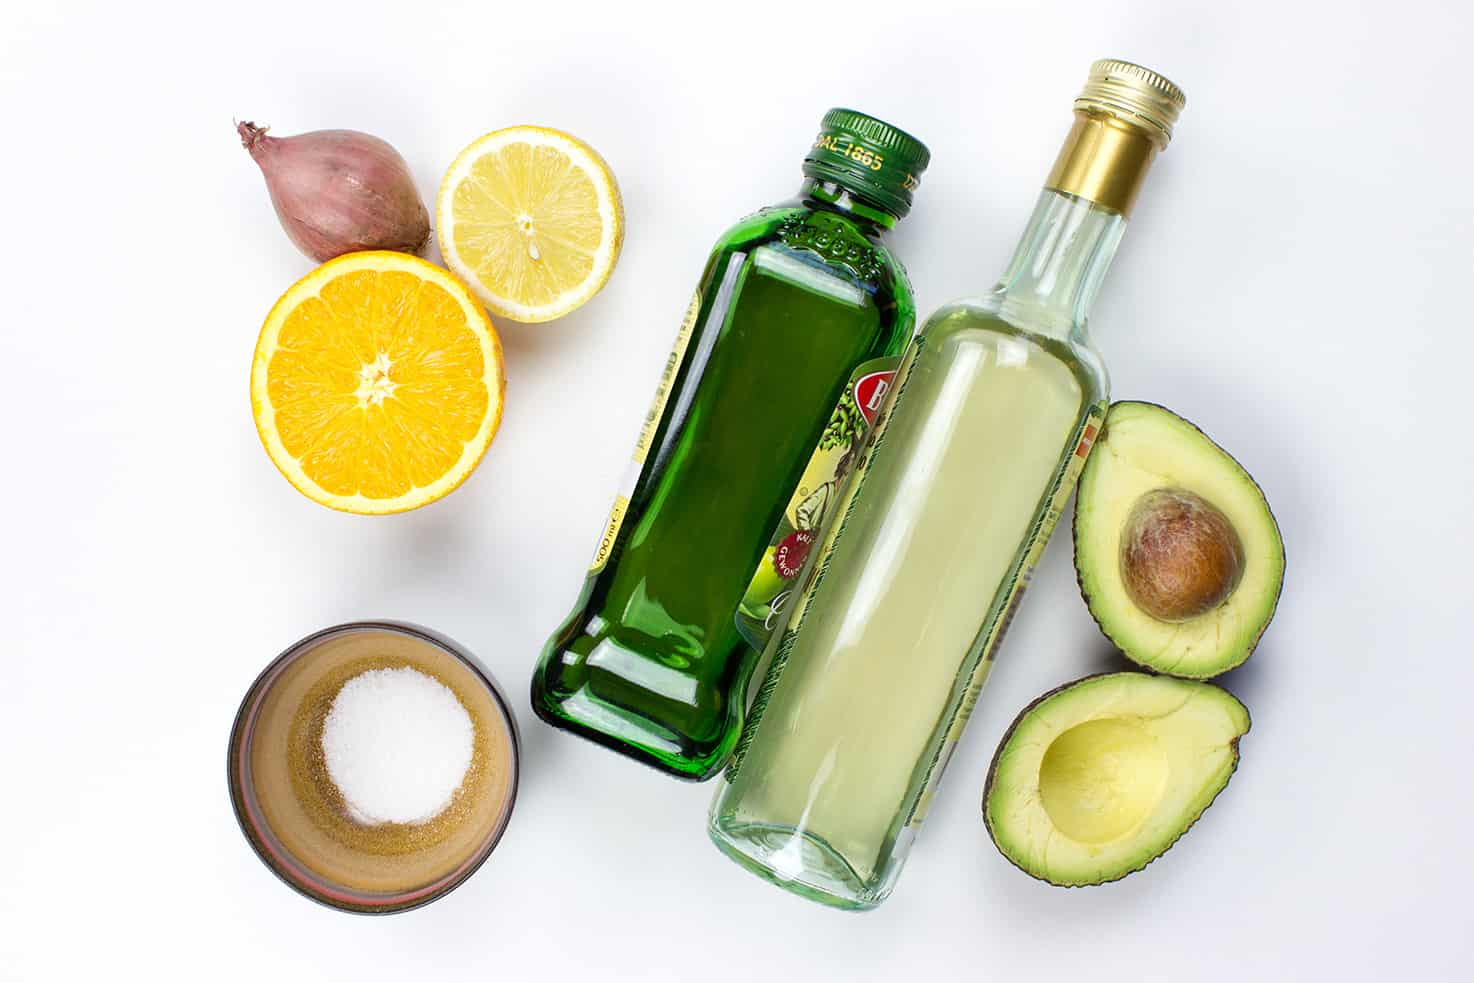 Avocado Salad Dressing - Dress to Impress - dressing ingredients #good fats #lemon | hurrythefoodup.com